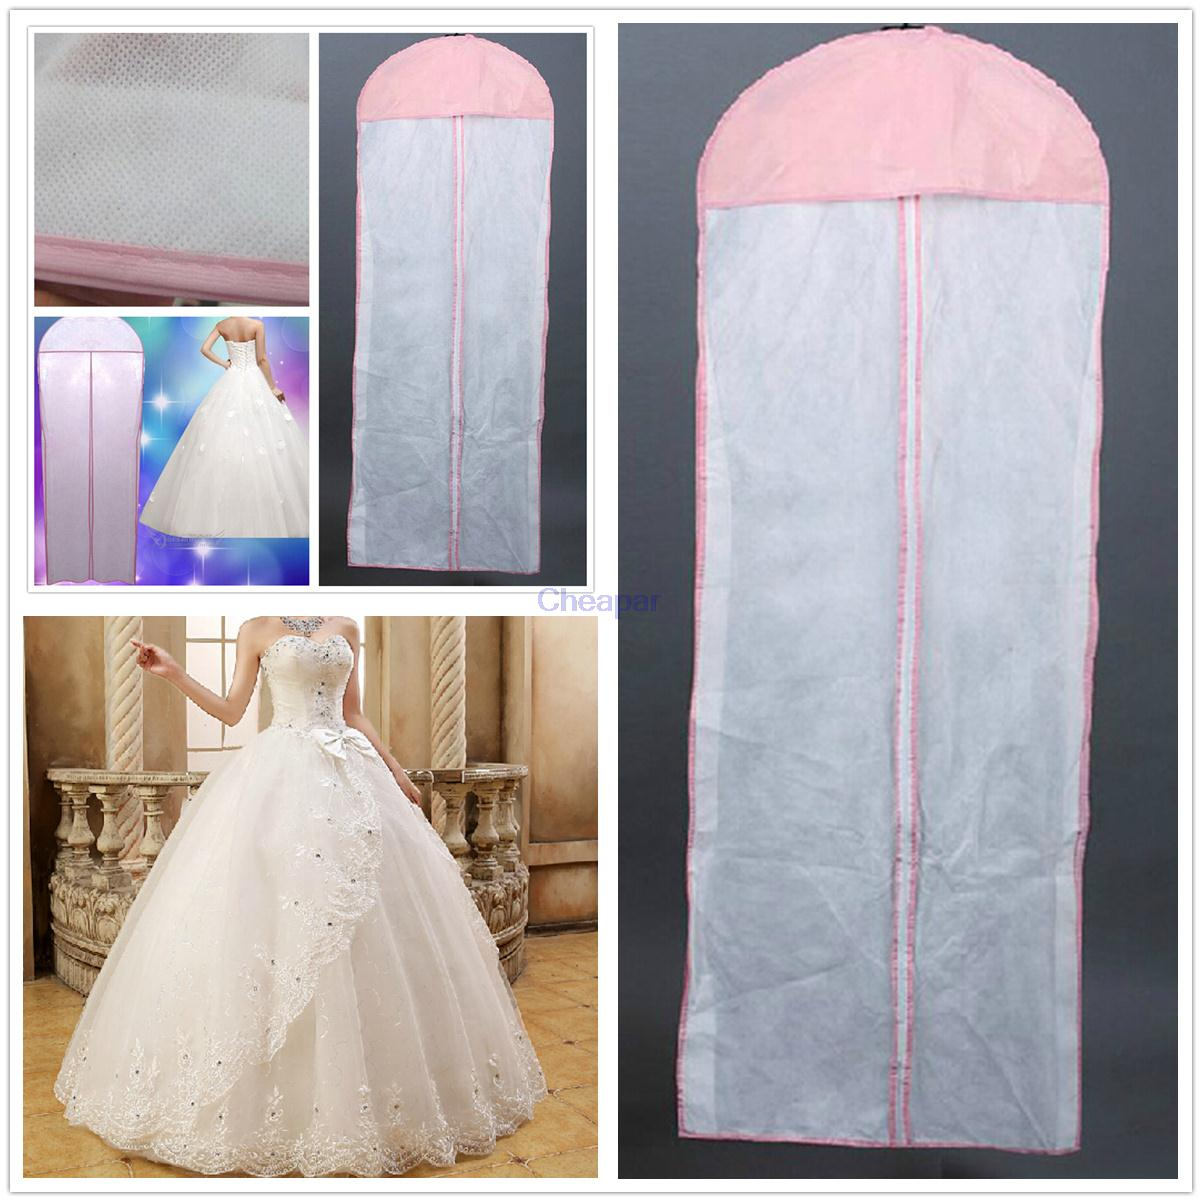 Wedding Gown Garment Bag: New White Breathable Wedding Prom Dress Bridal Gown